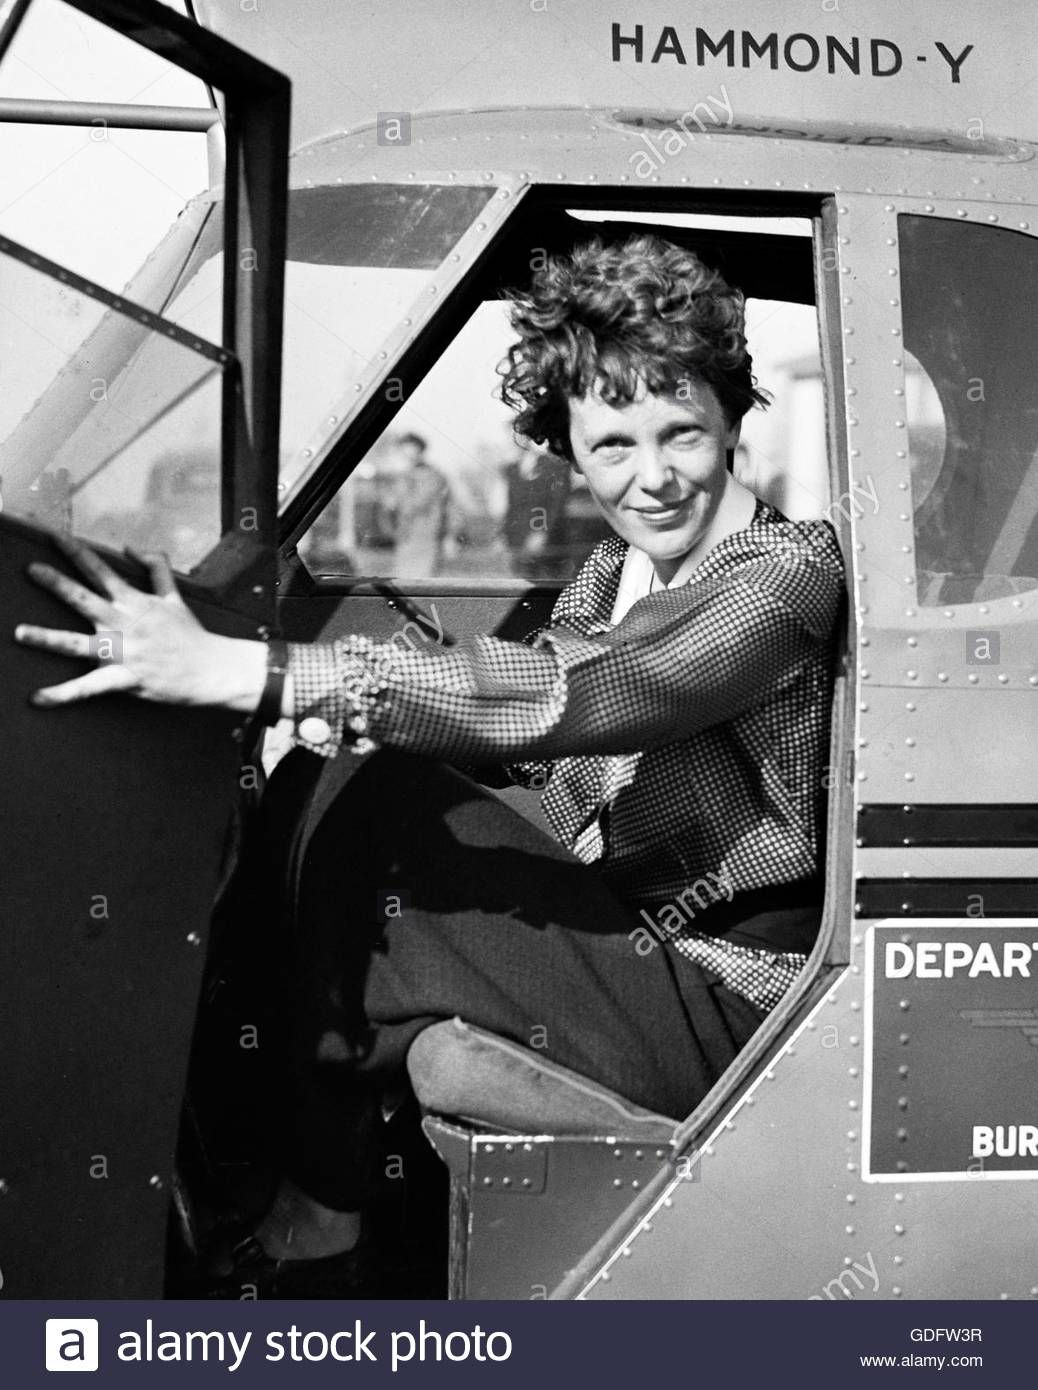 Download This Stock Image Amelia Earhart In